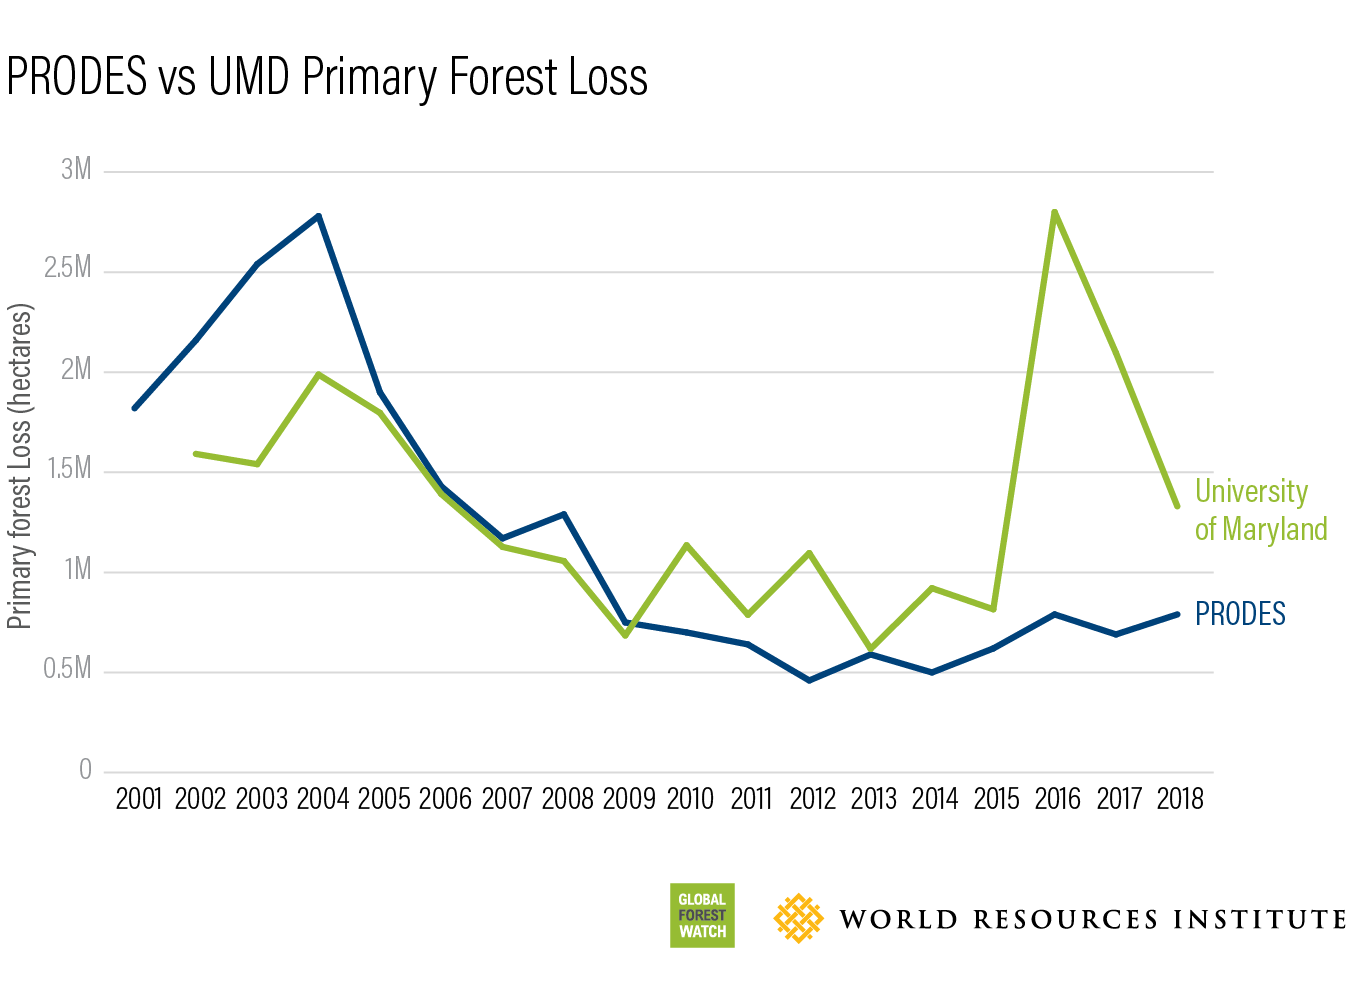 PRODES vs UMD Primary Forest Loss